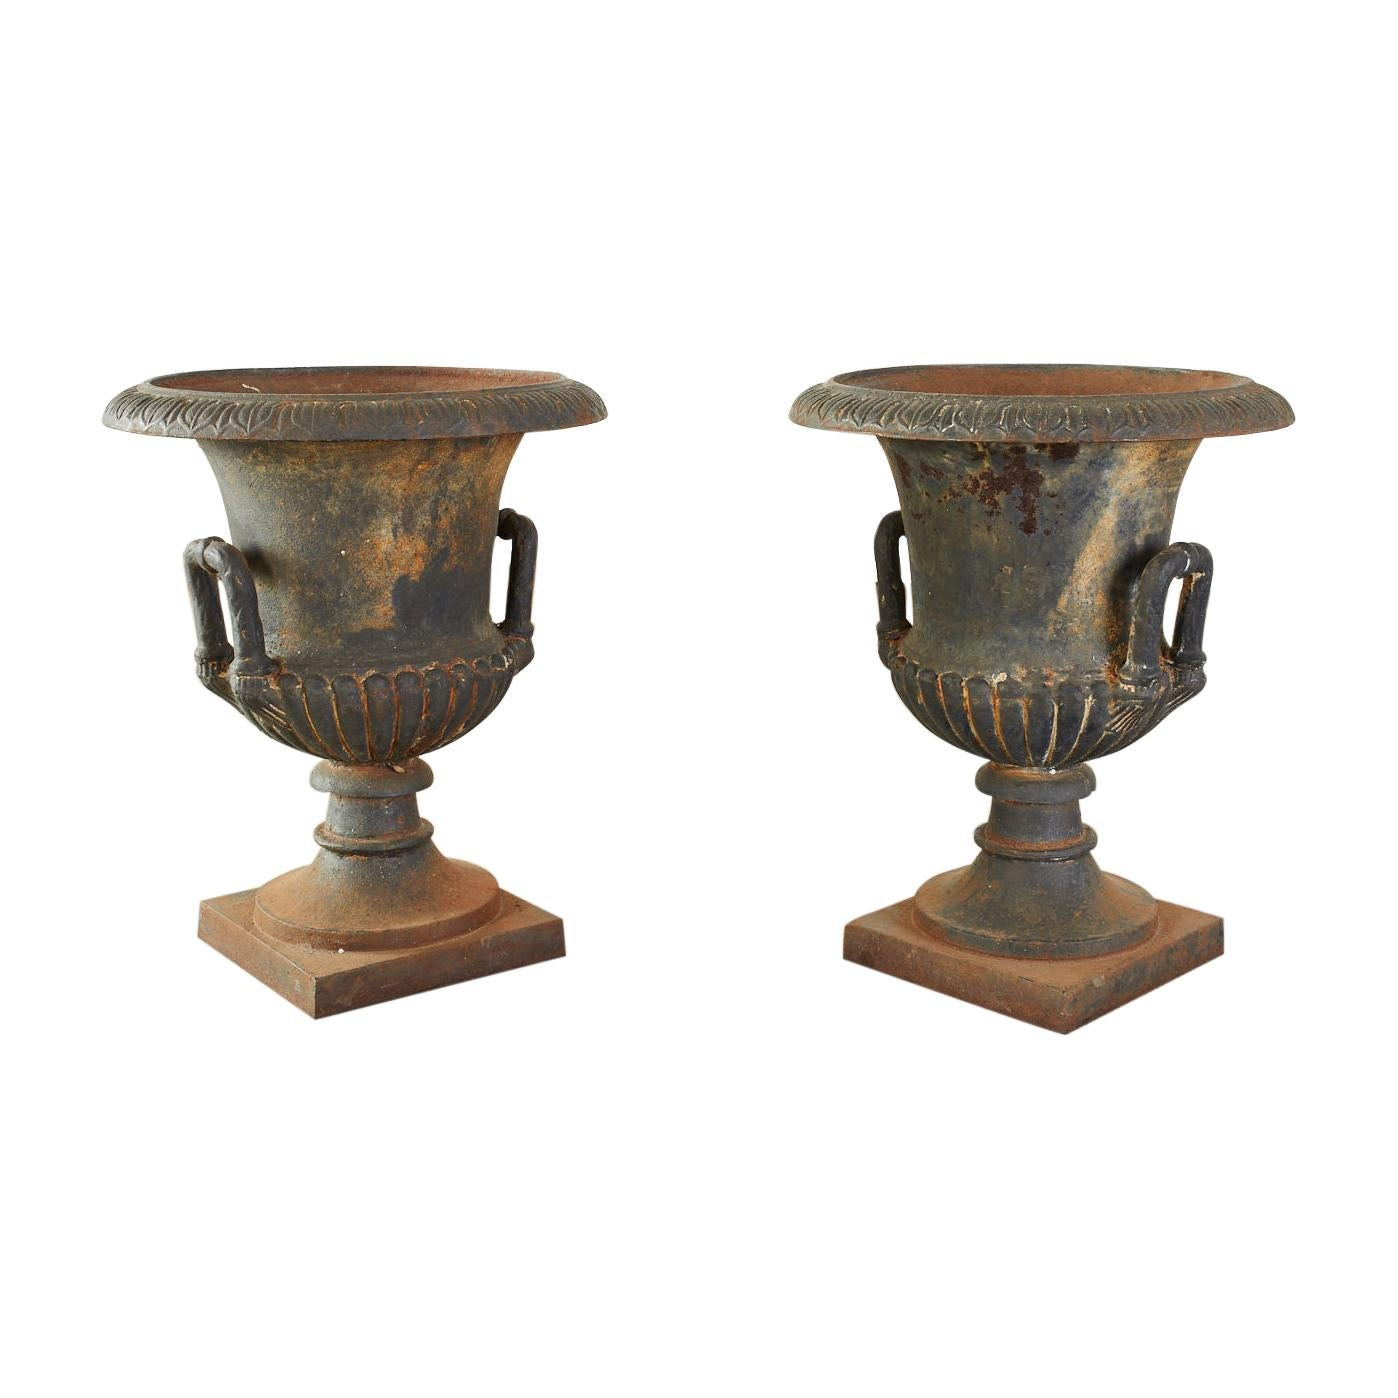 Pair of English Neoclassical Style Cast Iron Garden Urns